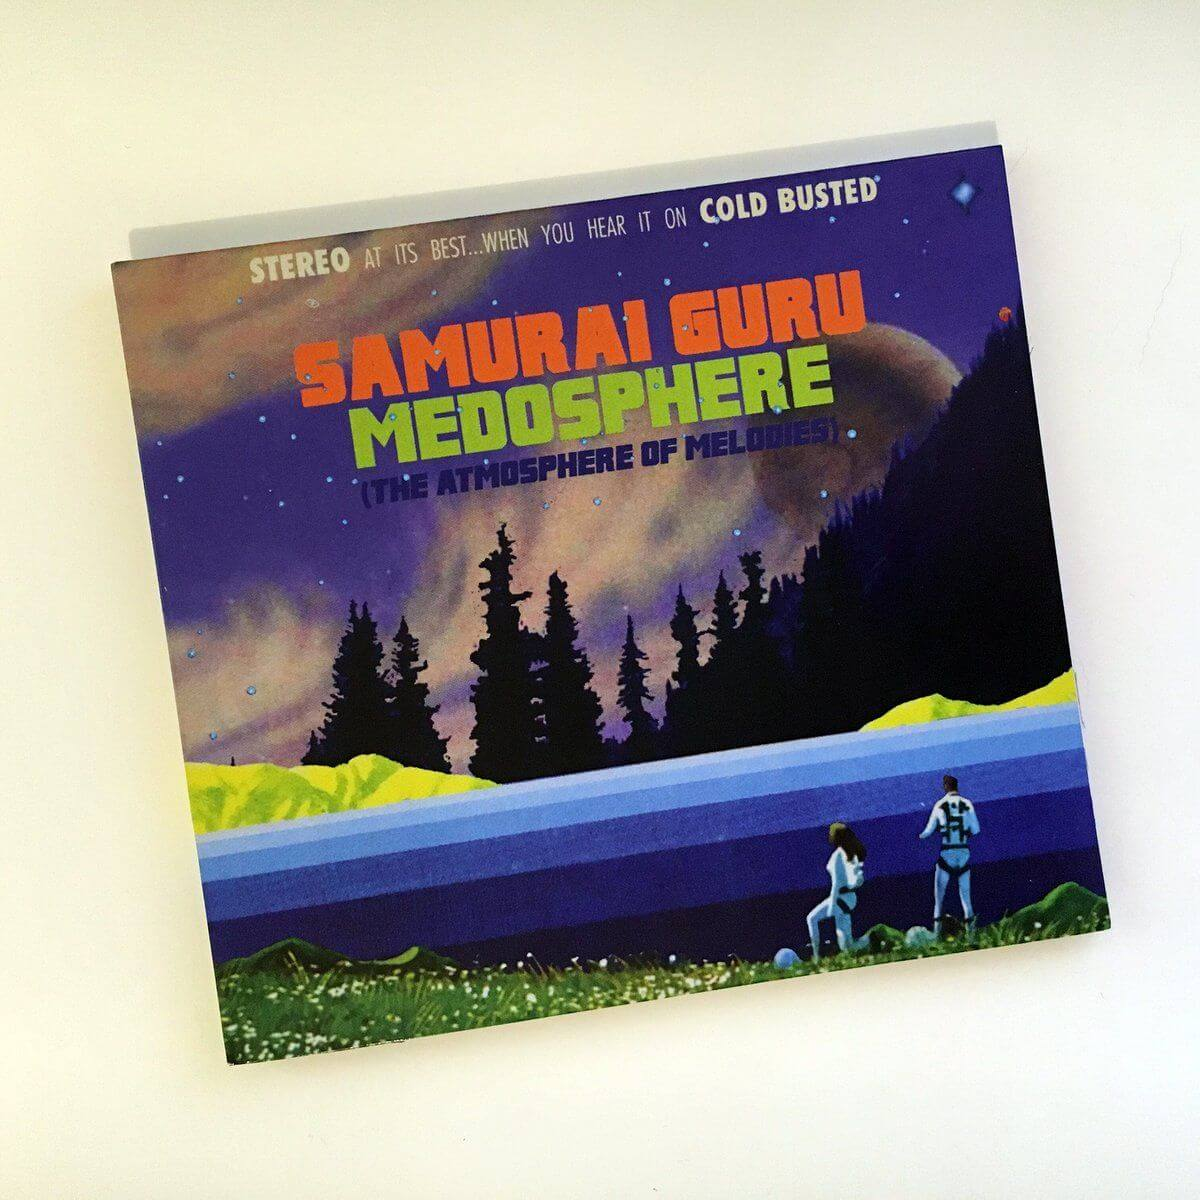 Samurai Guru - Medosphere (The Atmosphere Of Melodies) - Limited Edition Compact Disc Cold Busted